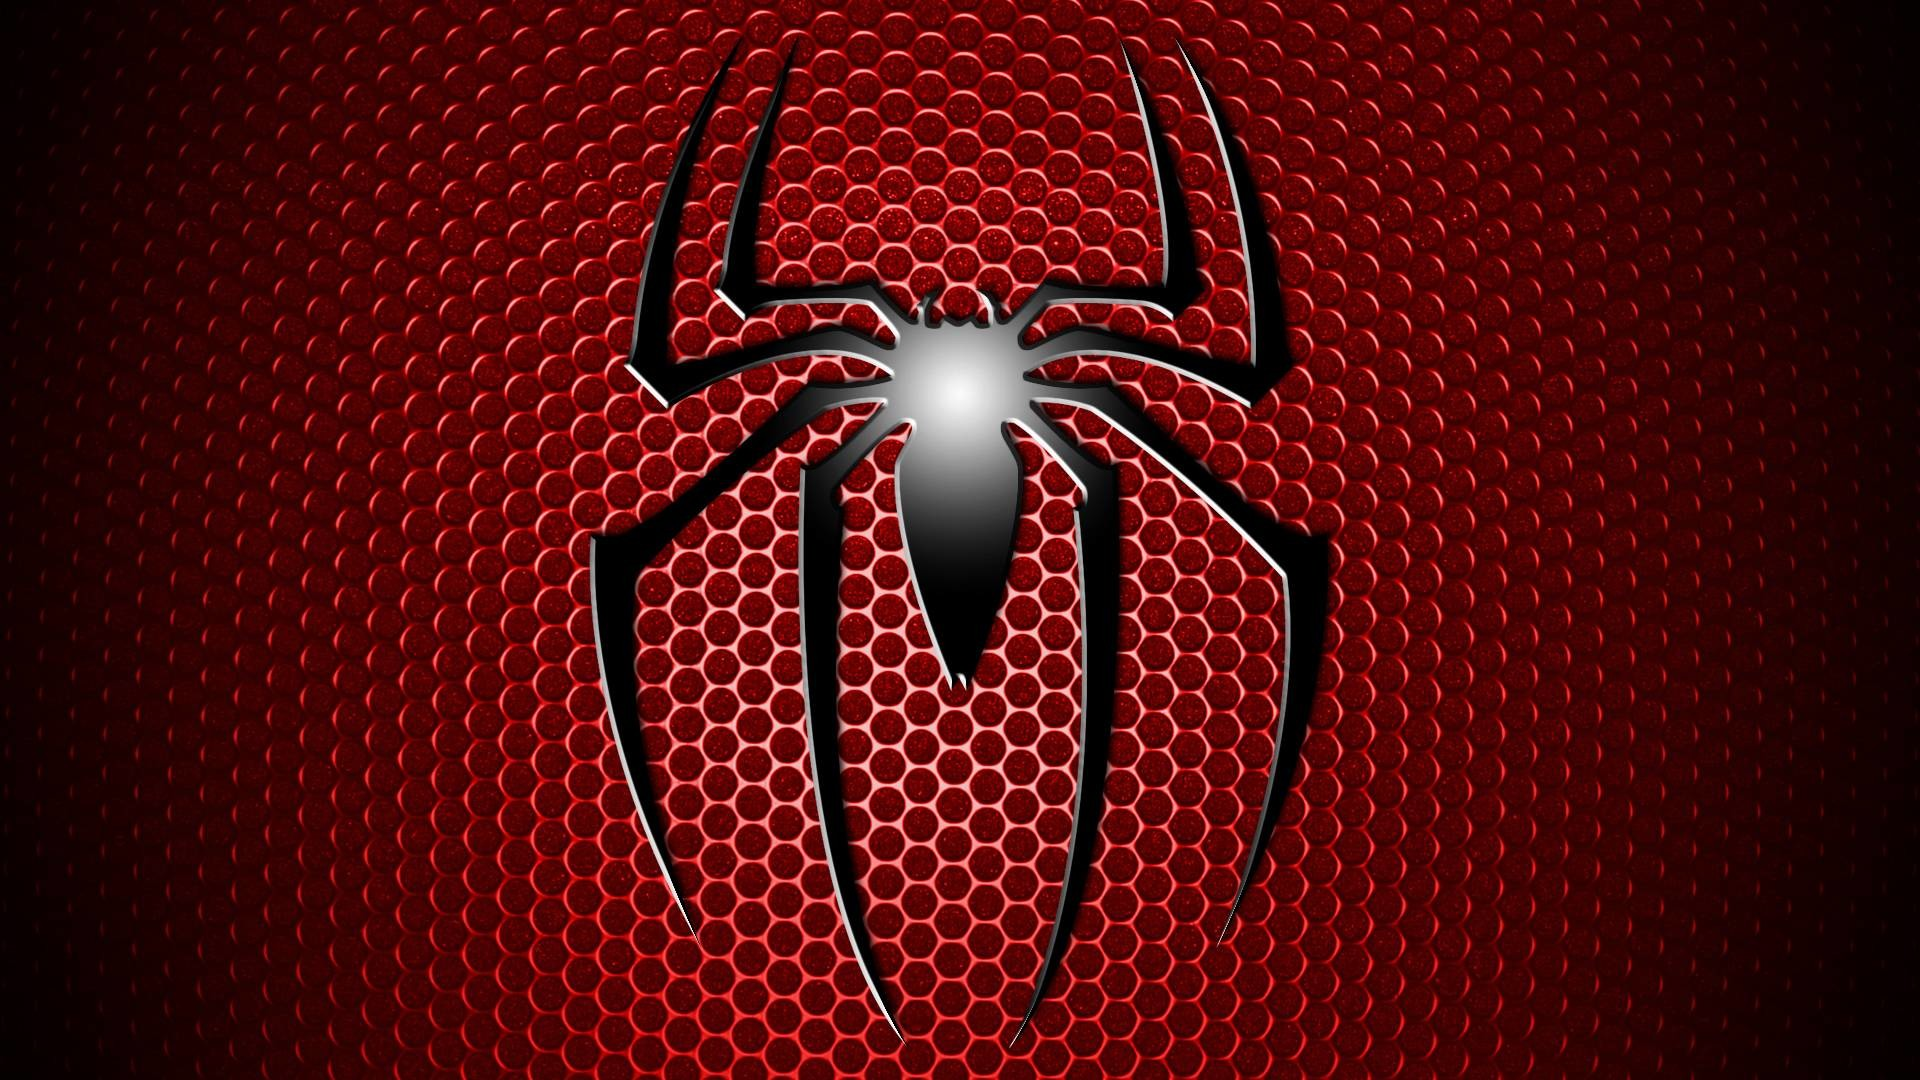 136 Spider Man Hd Wallpapers 1080p